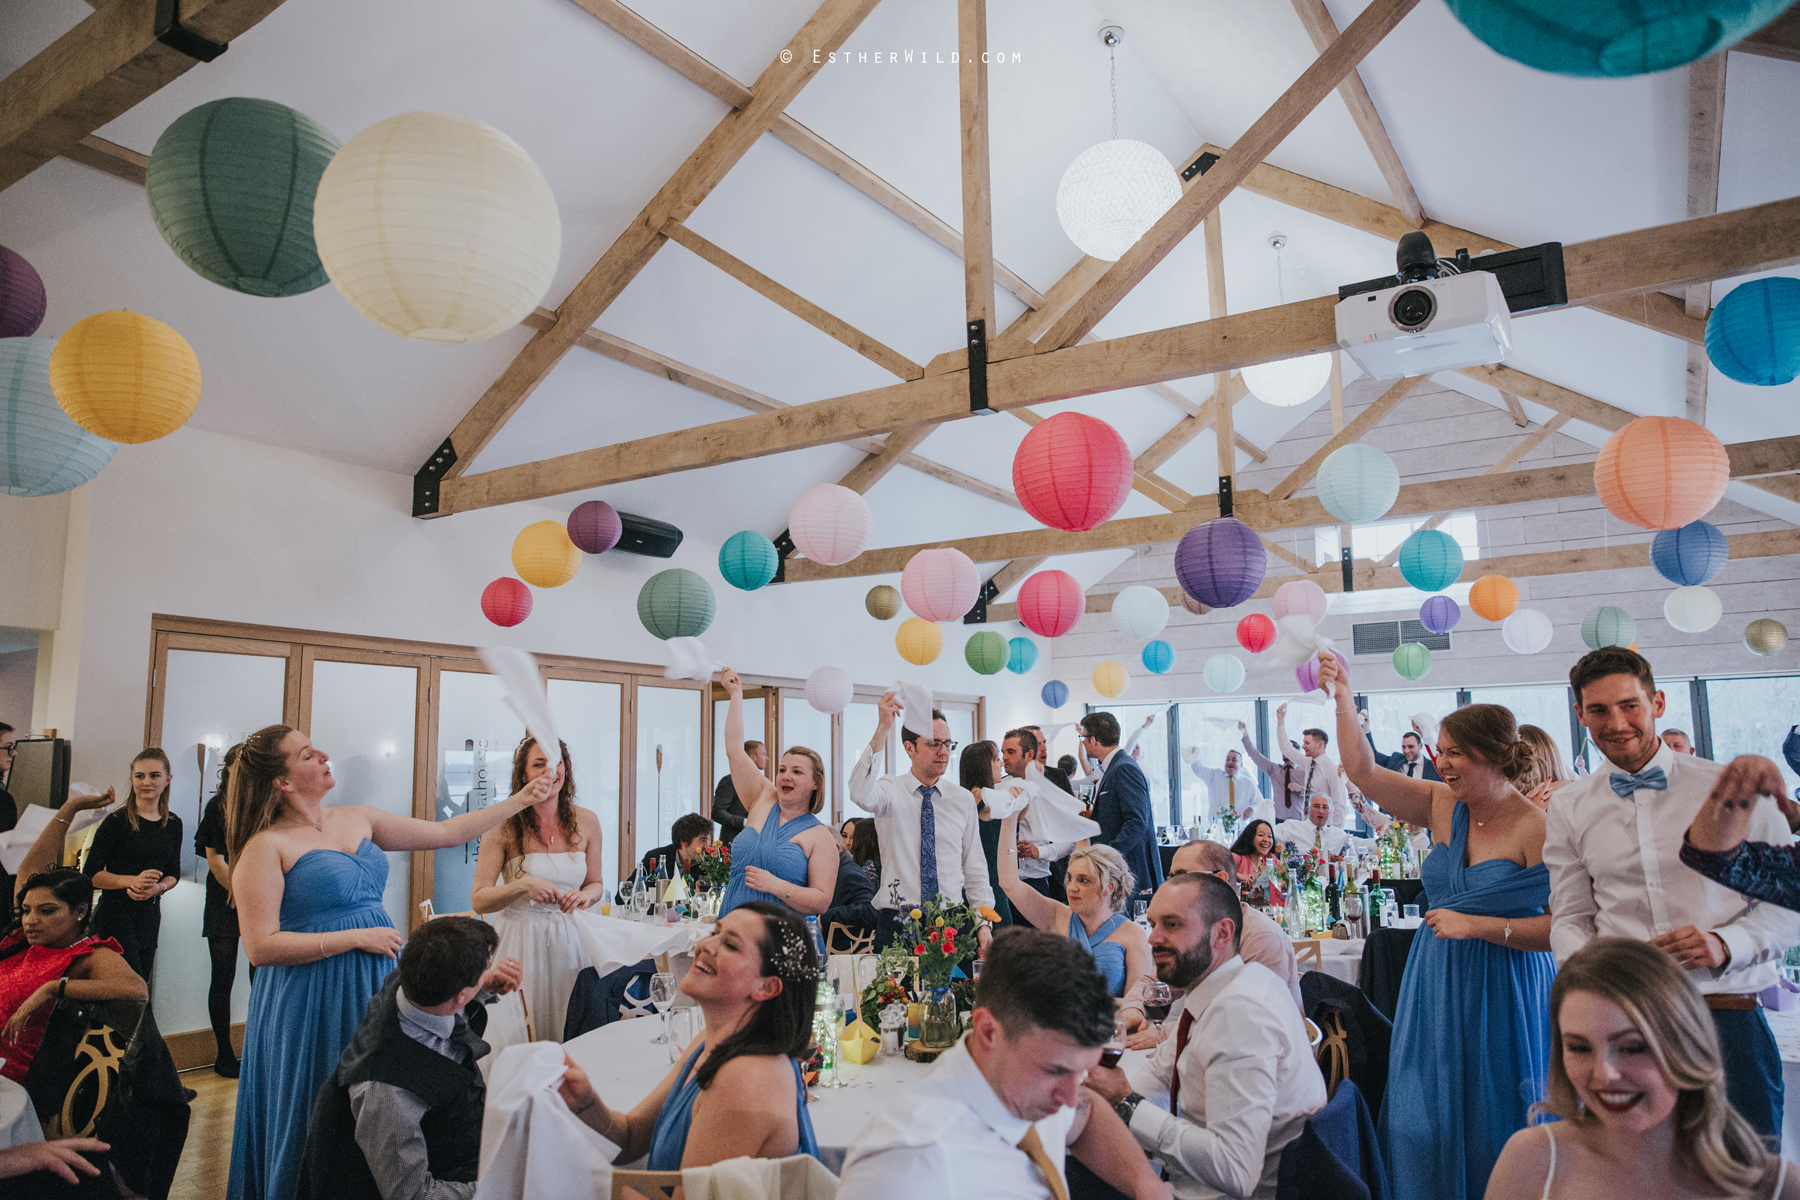 The_BoatHouse_Wedding_Venue_Ormesby_Norfolk_Broads_Boat_Wedding_Photography_Esther_Wild_Photographer_IMG_2999.jpg